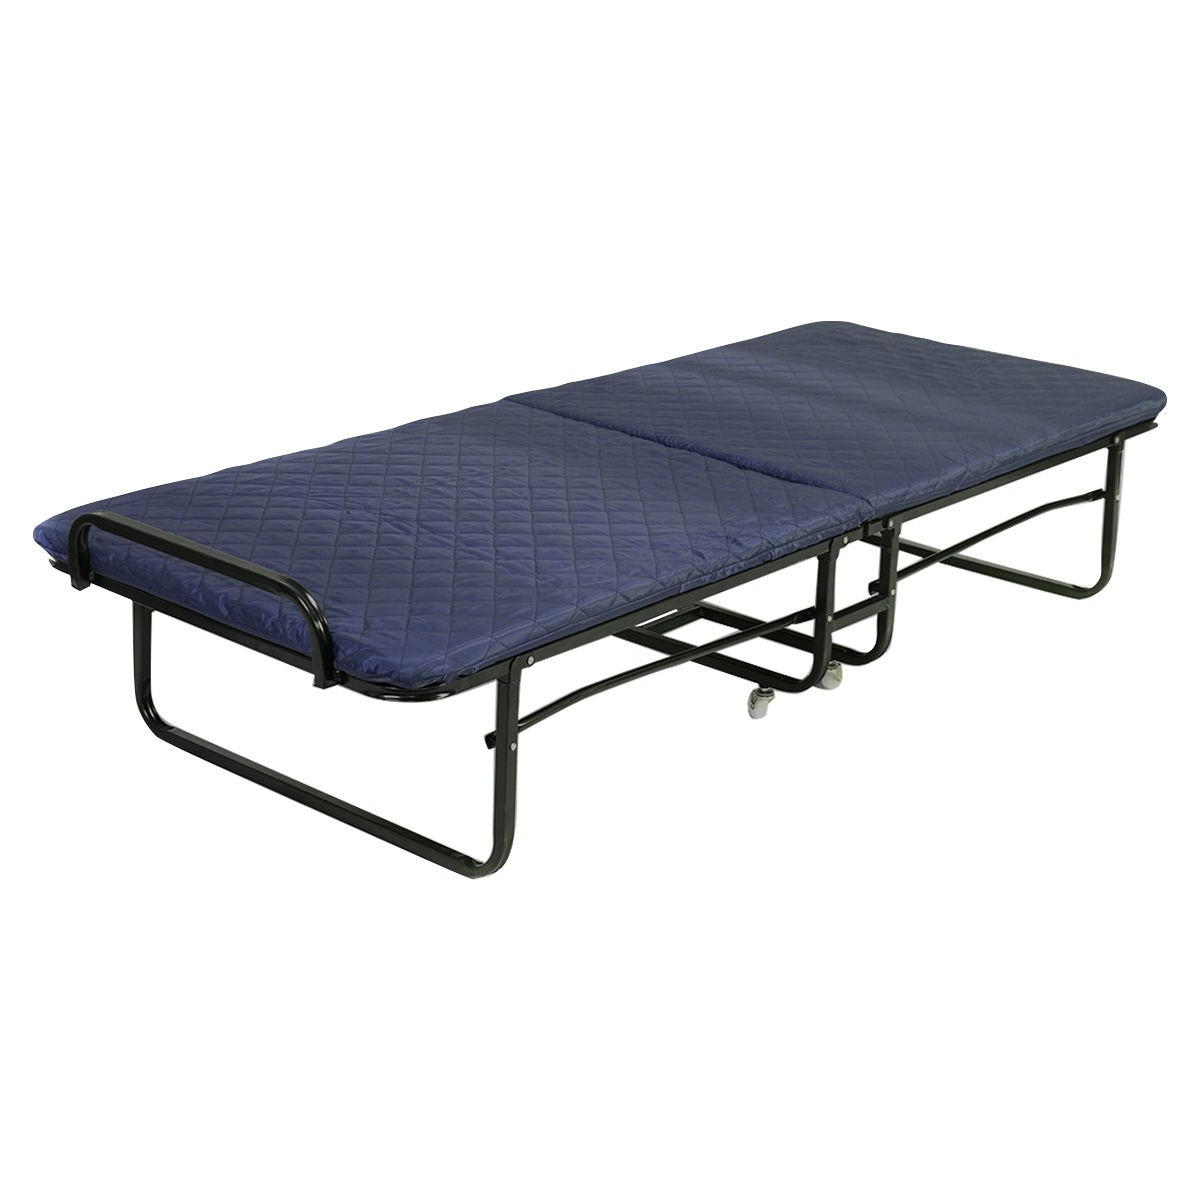 Folding bed foam mattress twin roll away guest portable sleeper dark blue ebay Bed with mattress